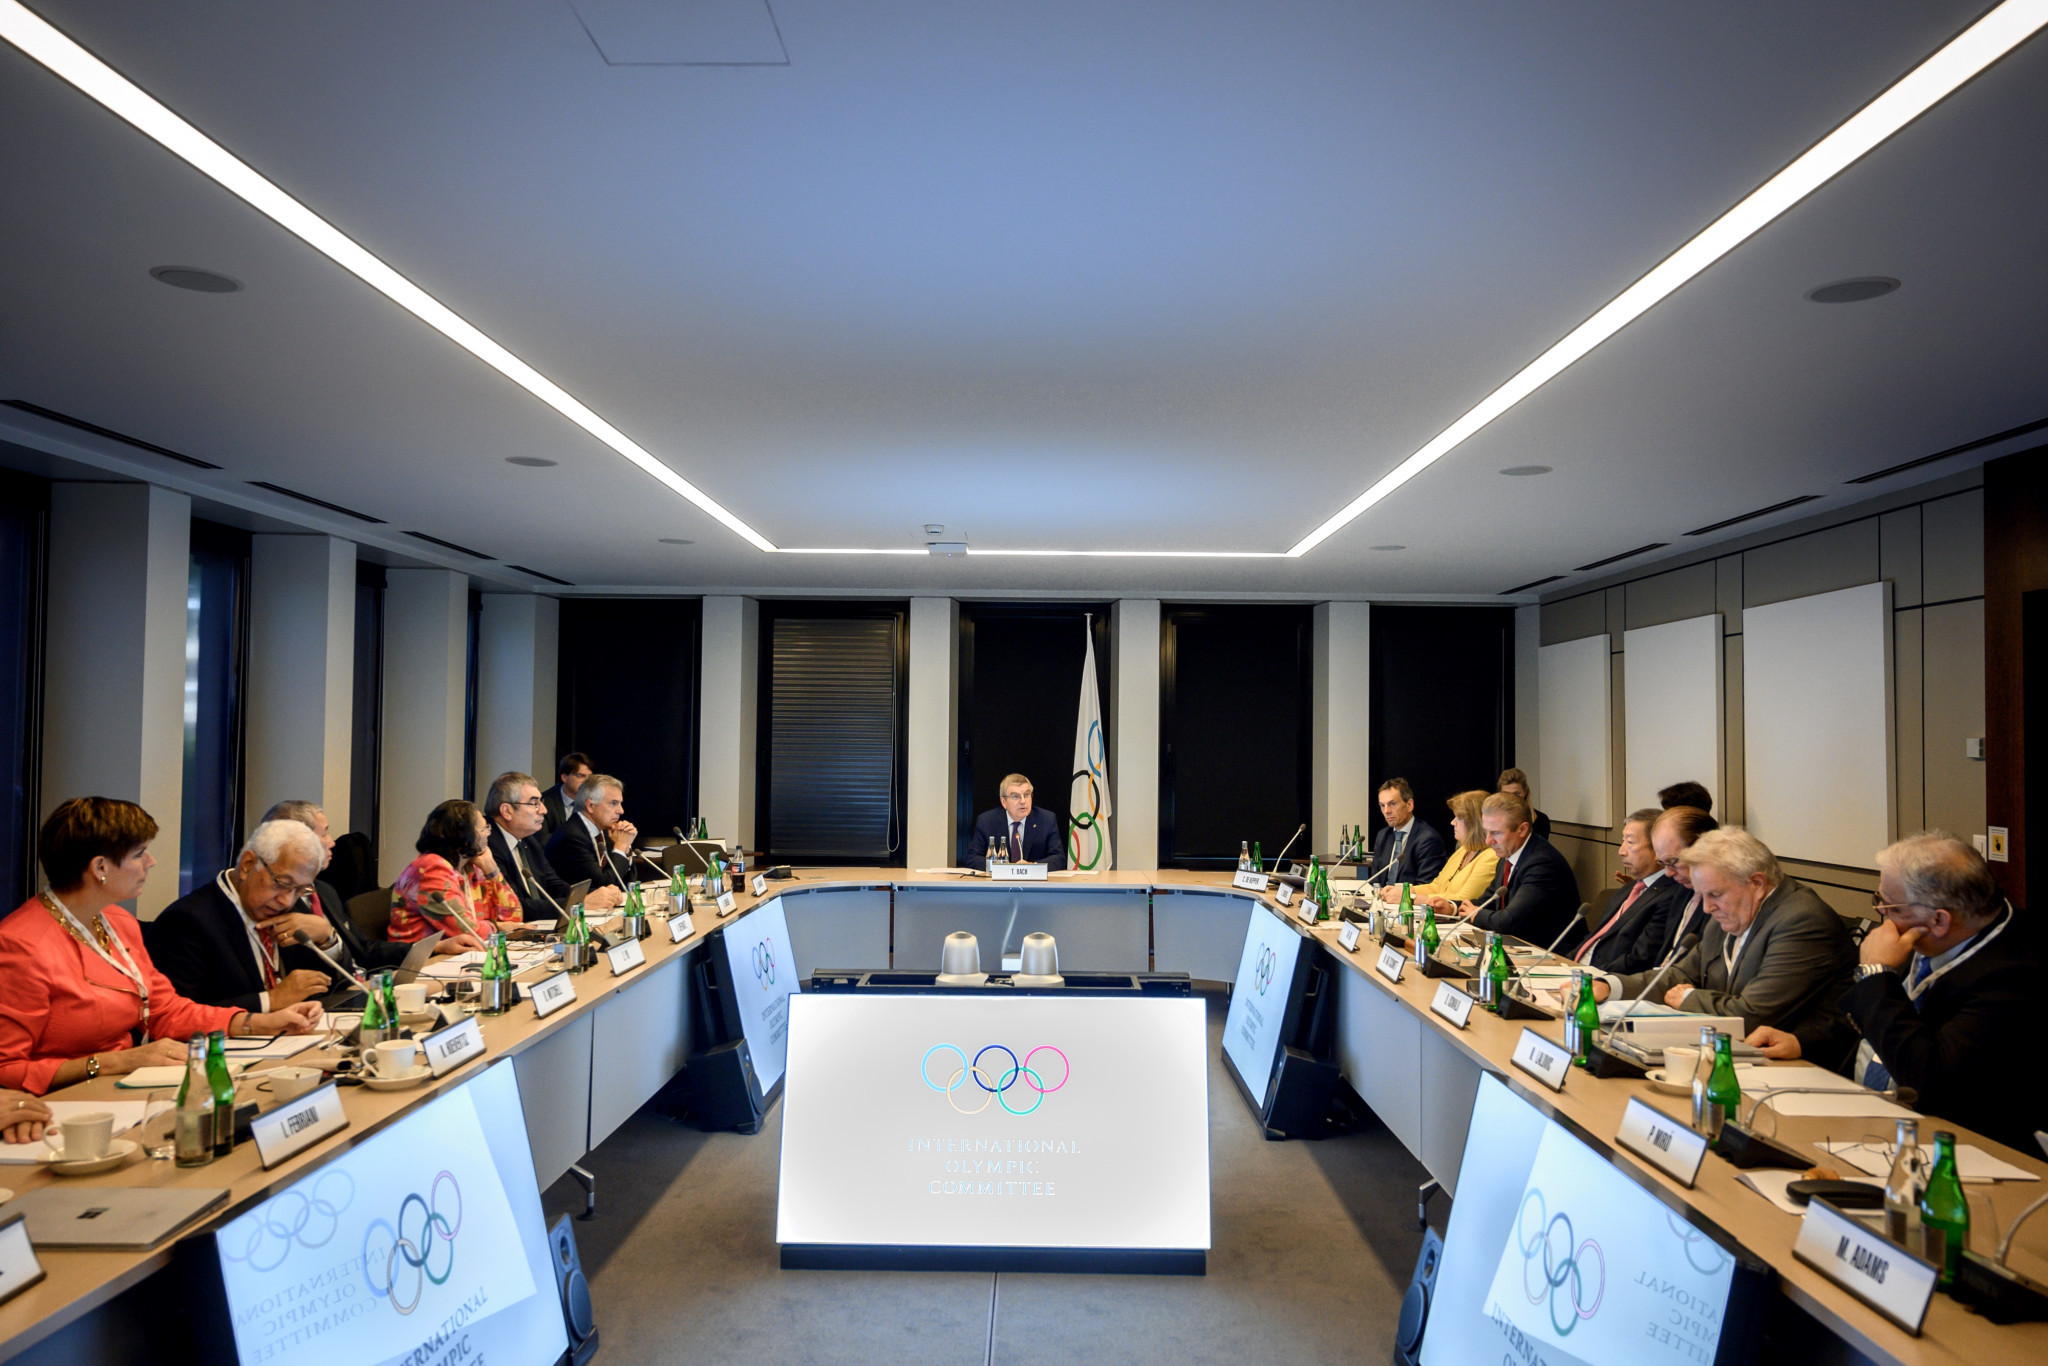 The IOC Executive Board took the decision to suspend AIBA at its meeting in Lausanne ©Getty Images